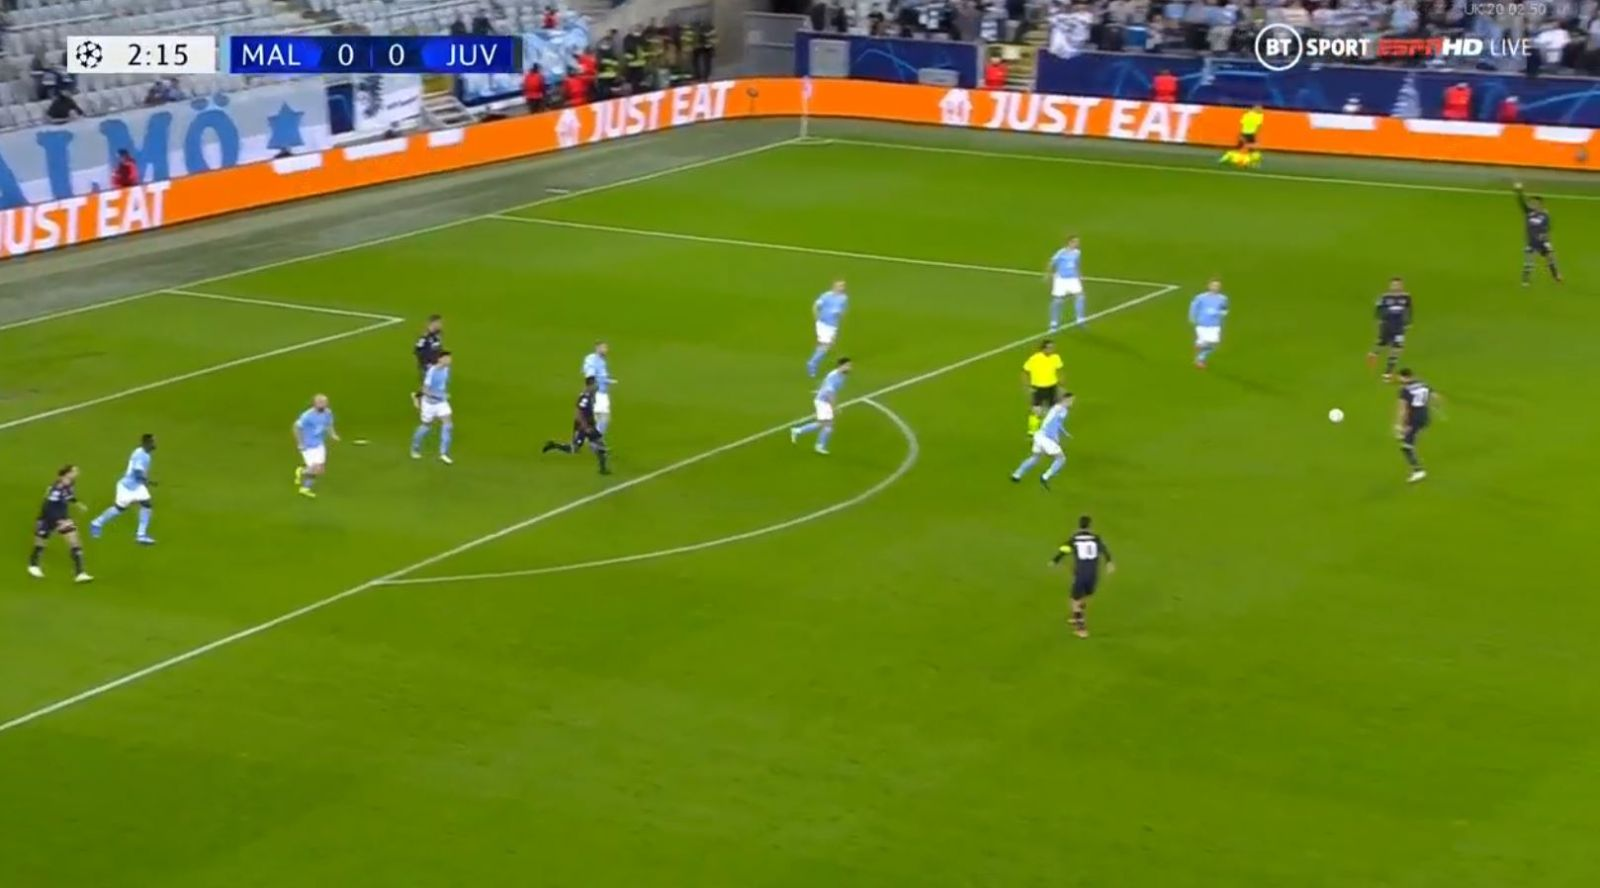 Malmo FF 0-3 Juventus 2021.09.14 (20h00) Watch Full Goals Highlight Extended (15 Minutes)